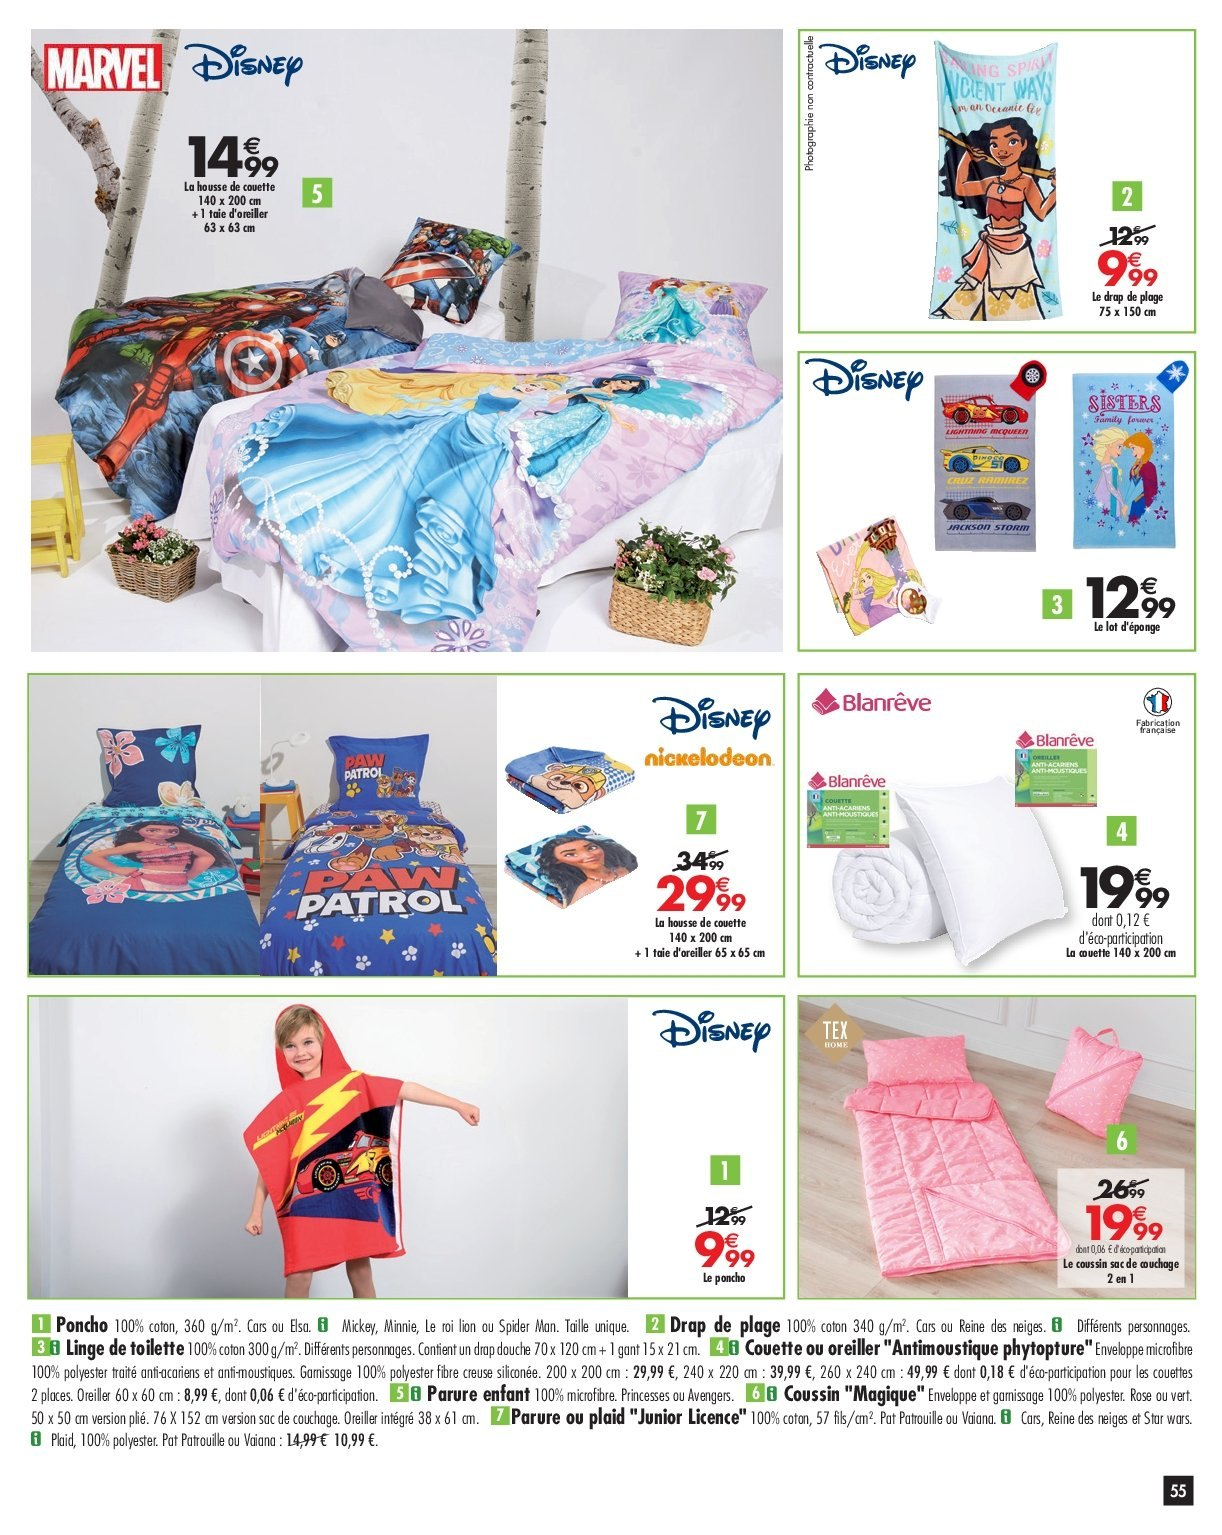 a305813fb7 Catalogue Carrefour - 09.04.2019 - 22.04.2019 - Produits soldés - cars,